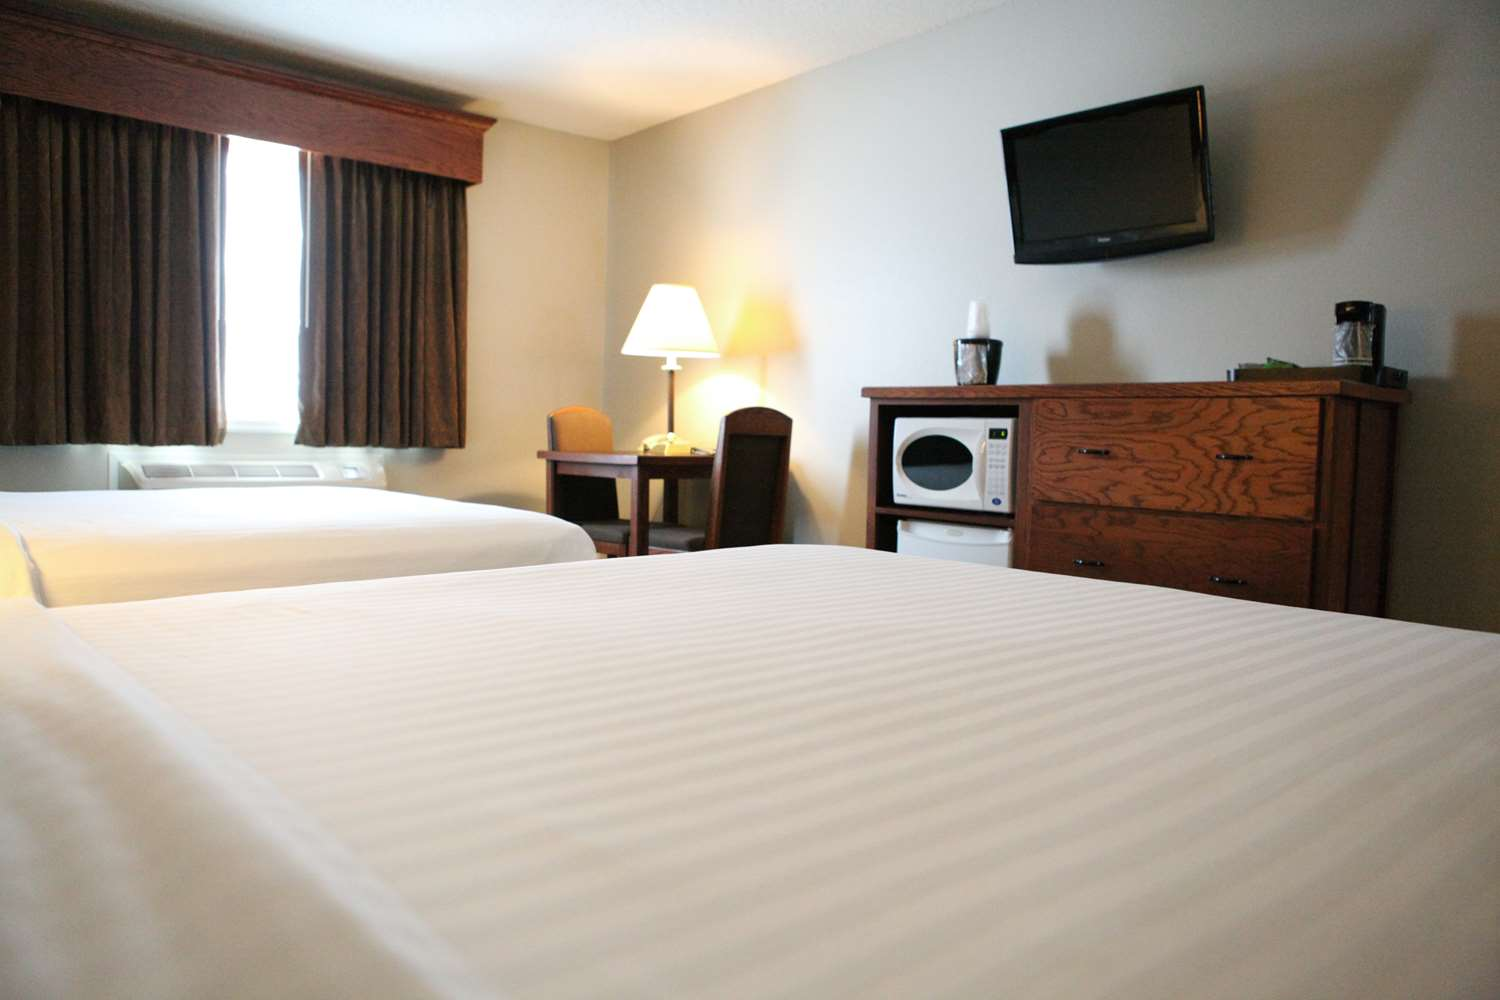 Room - GrandStay Hotel & Suites Perham